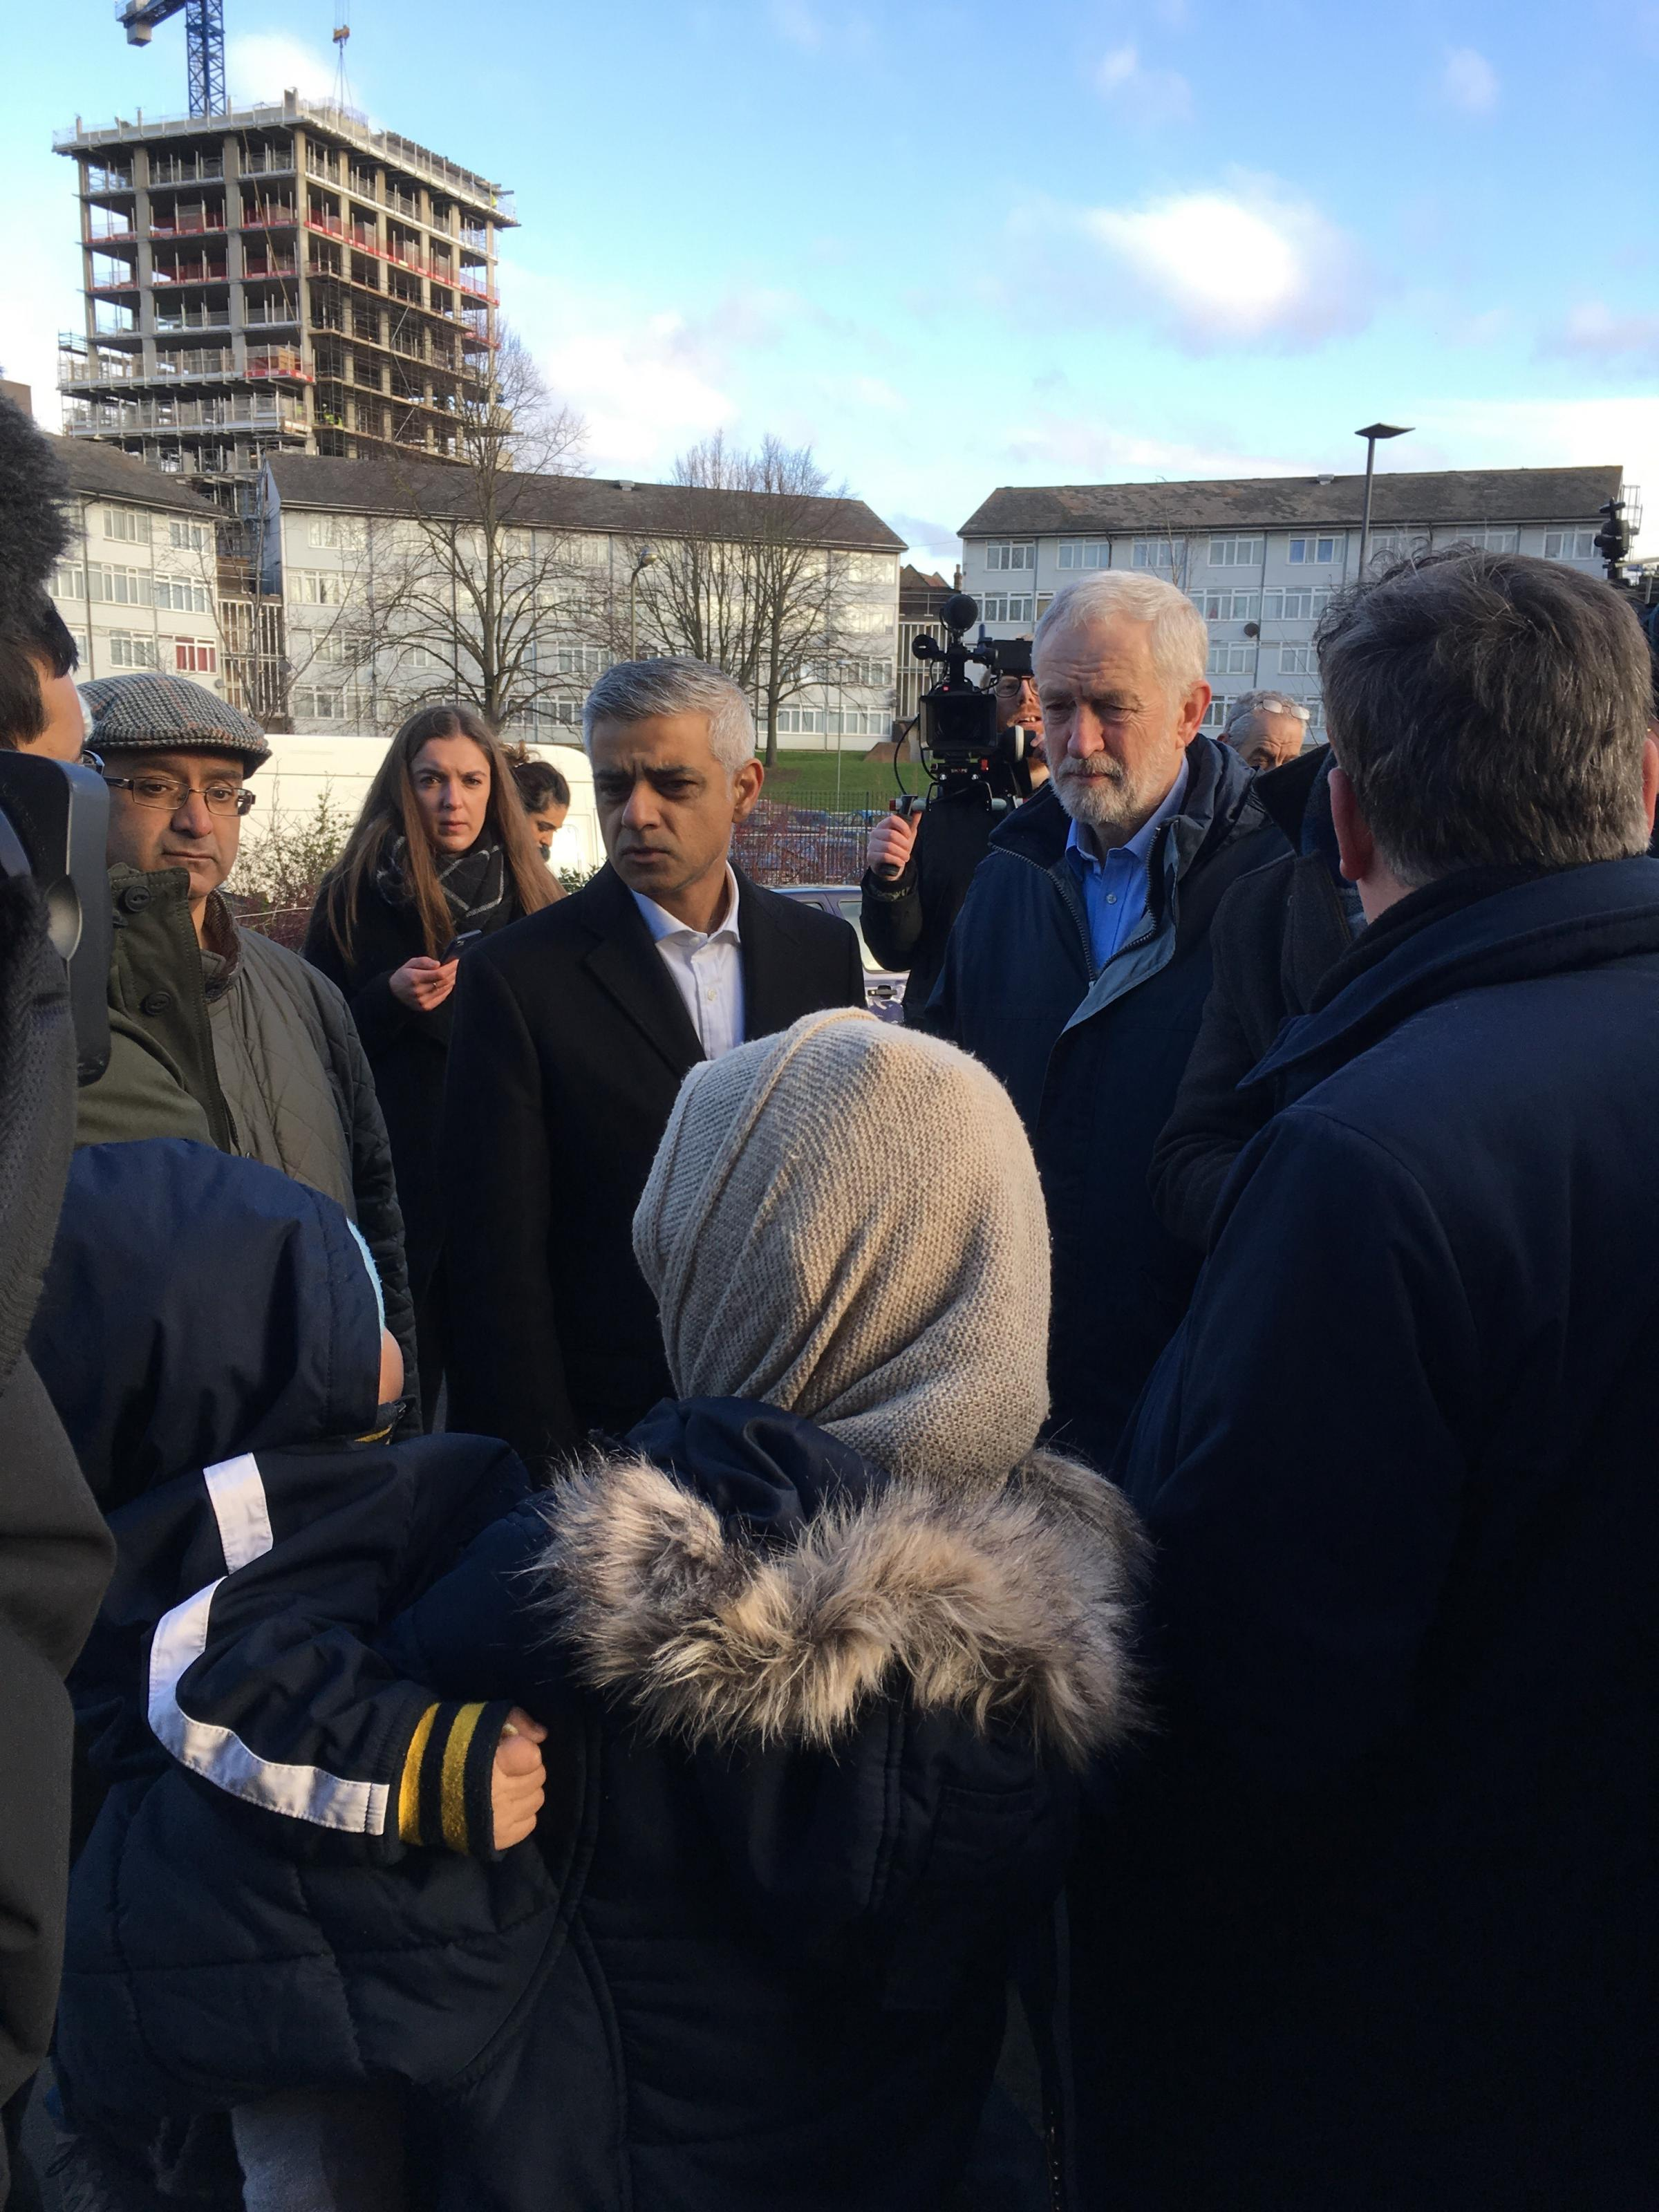 Mayor Sadiq Khan and Labour leader Jeremy Corbyn meeting with residents in West Hendon